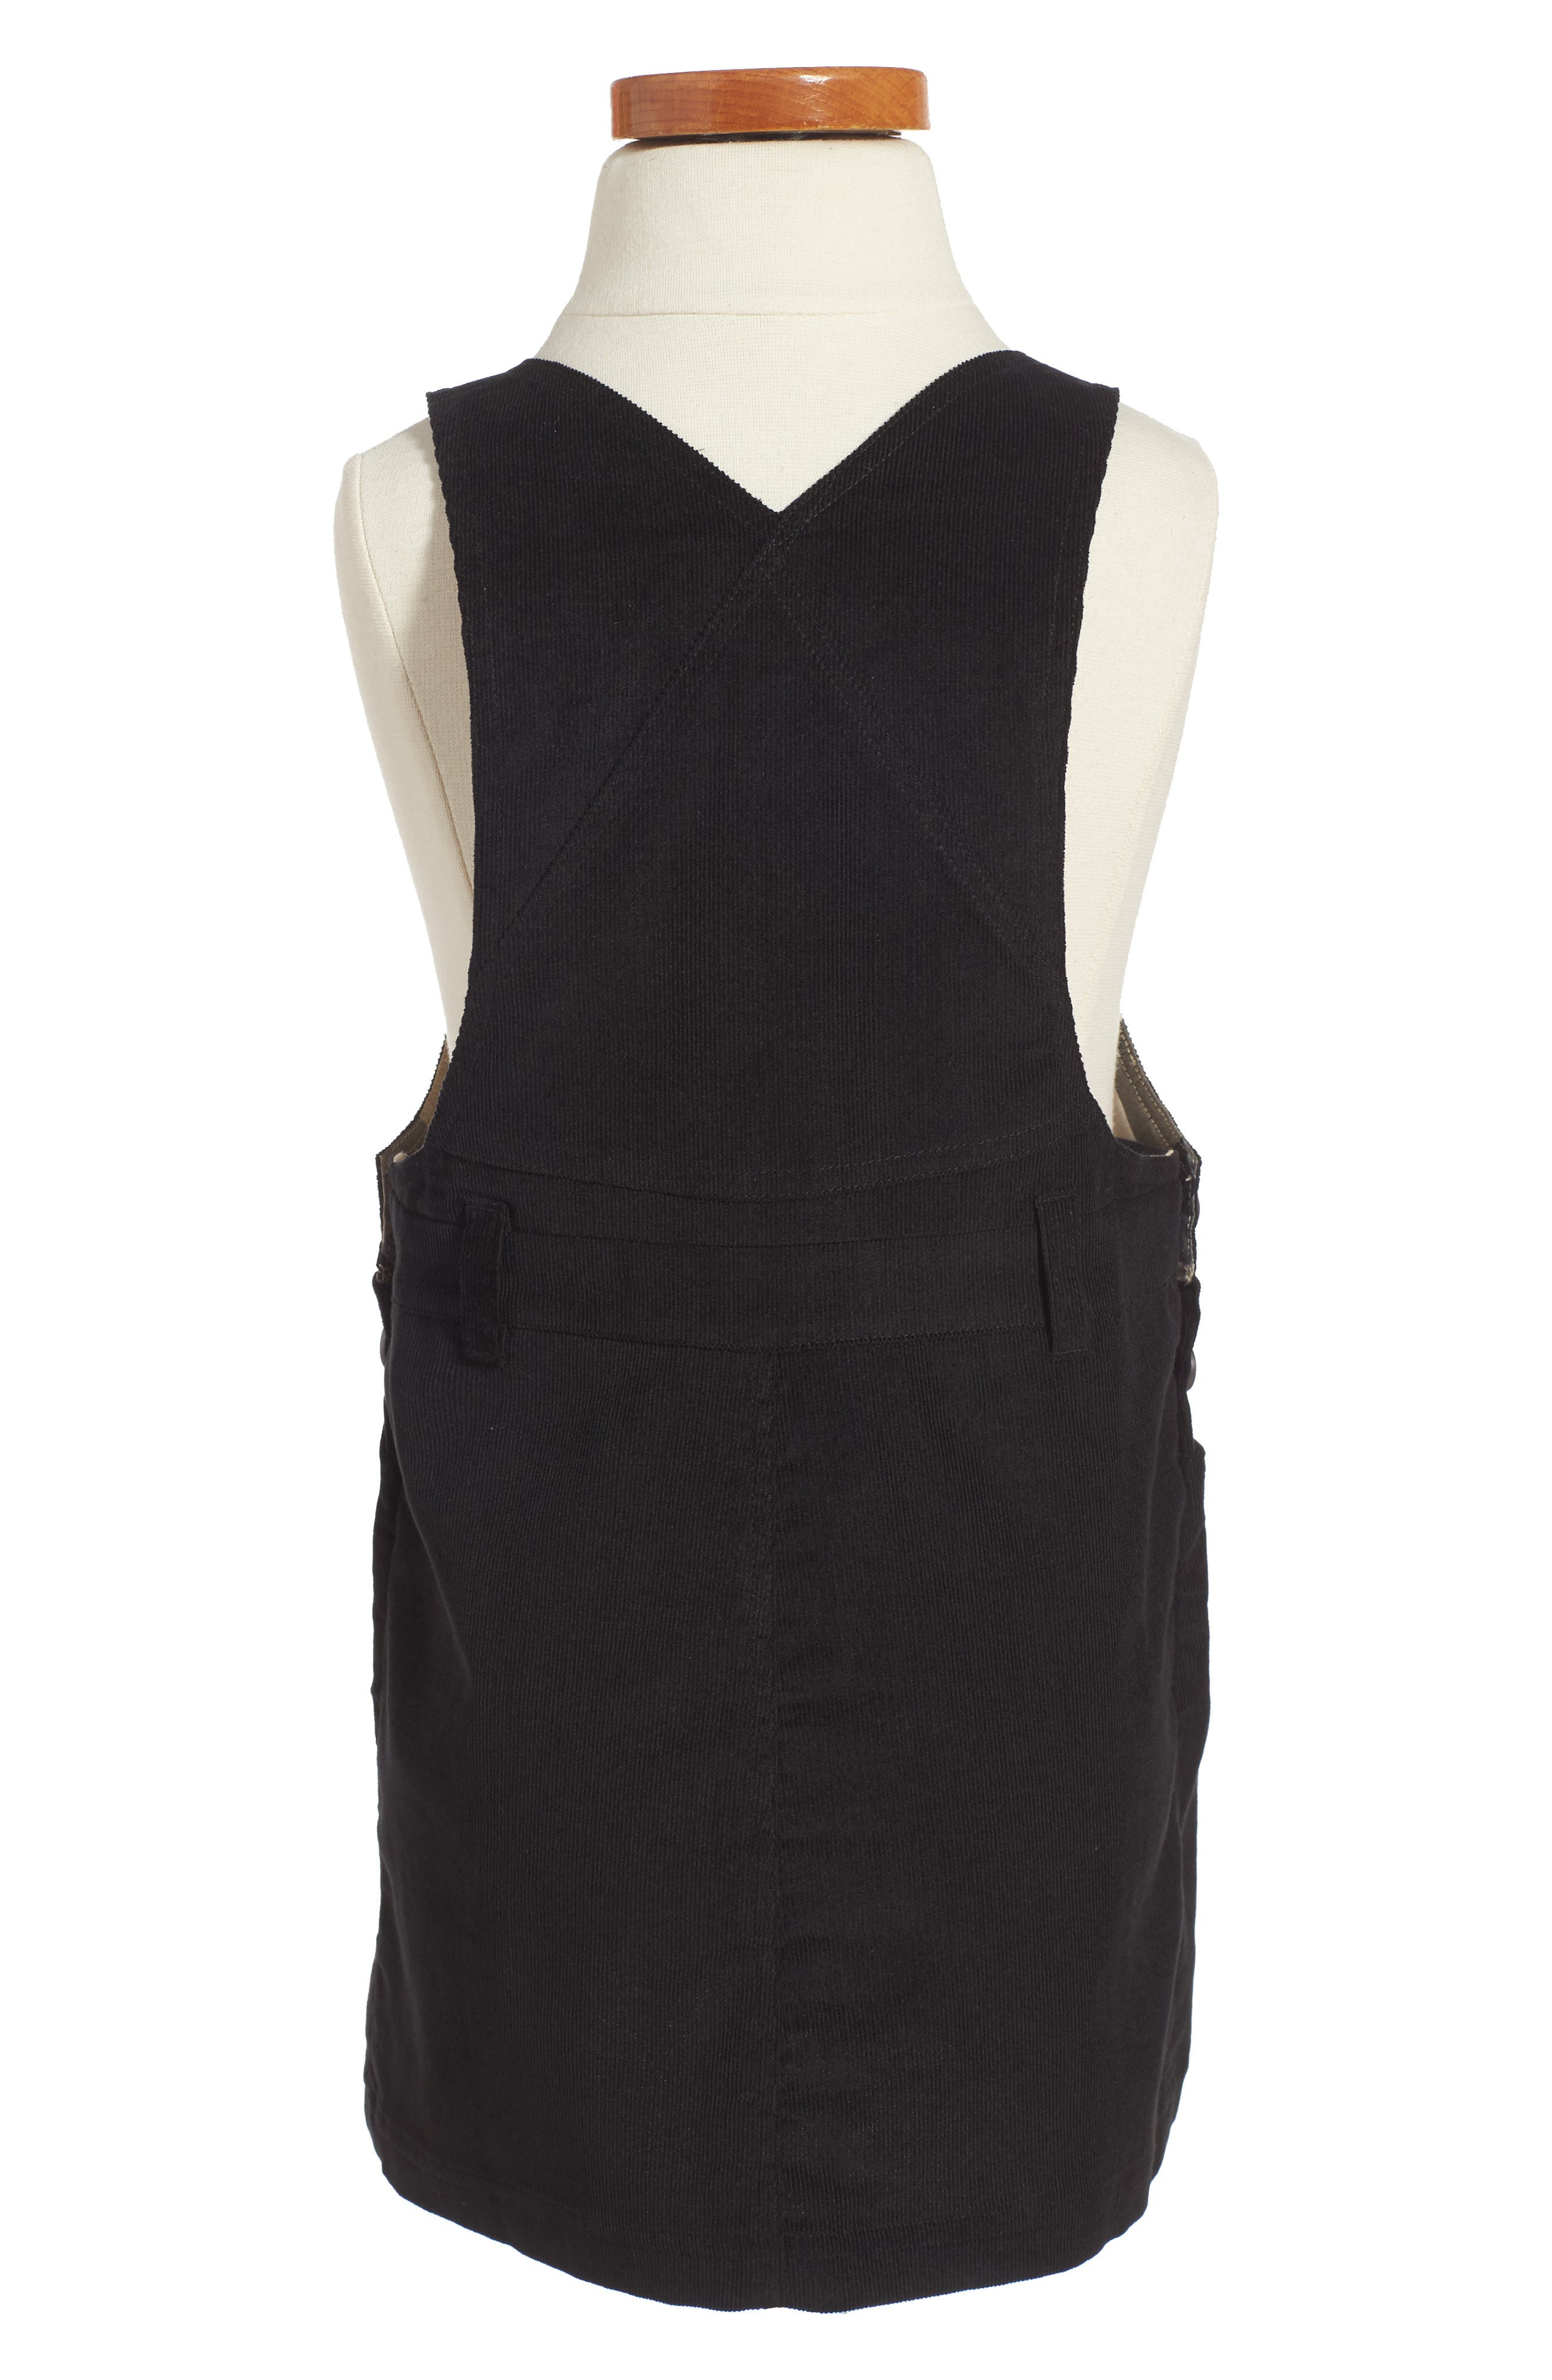 Wilma Overalls Dress,                             Alternate thumbnail 2, color,                             001